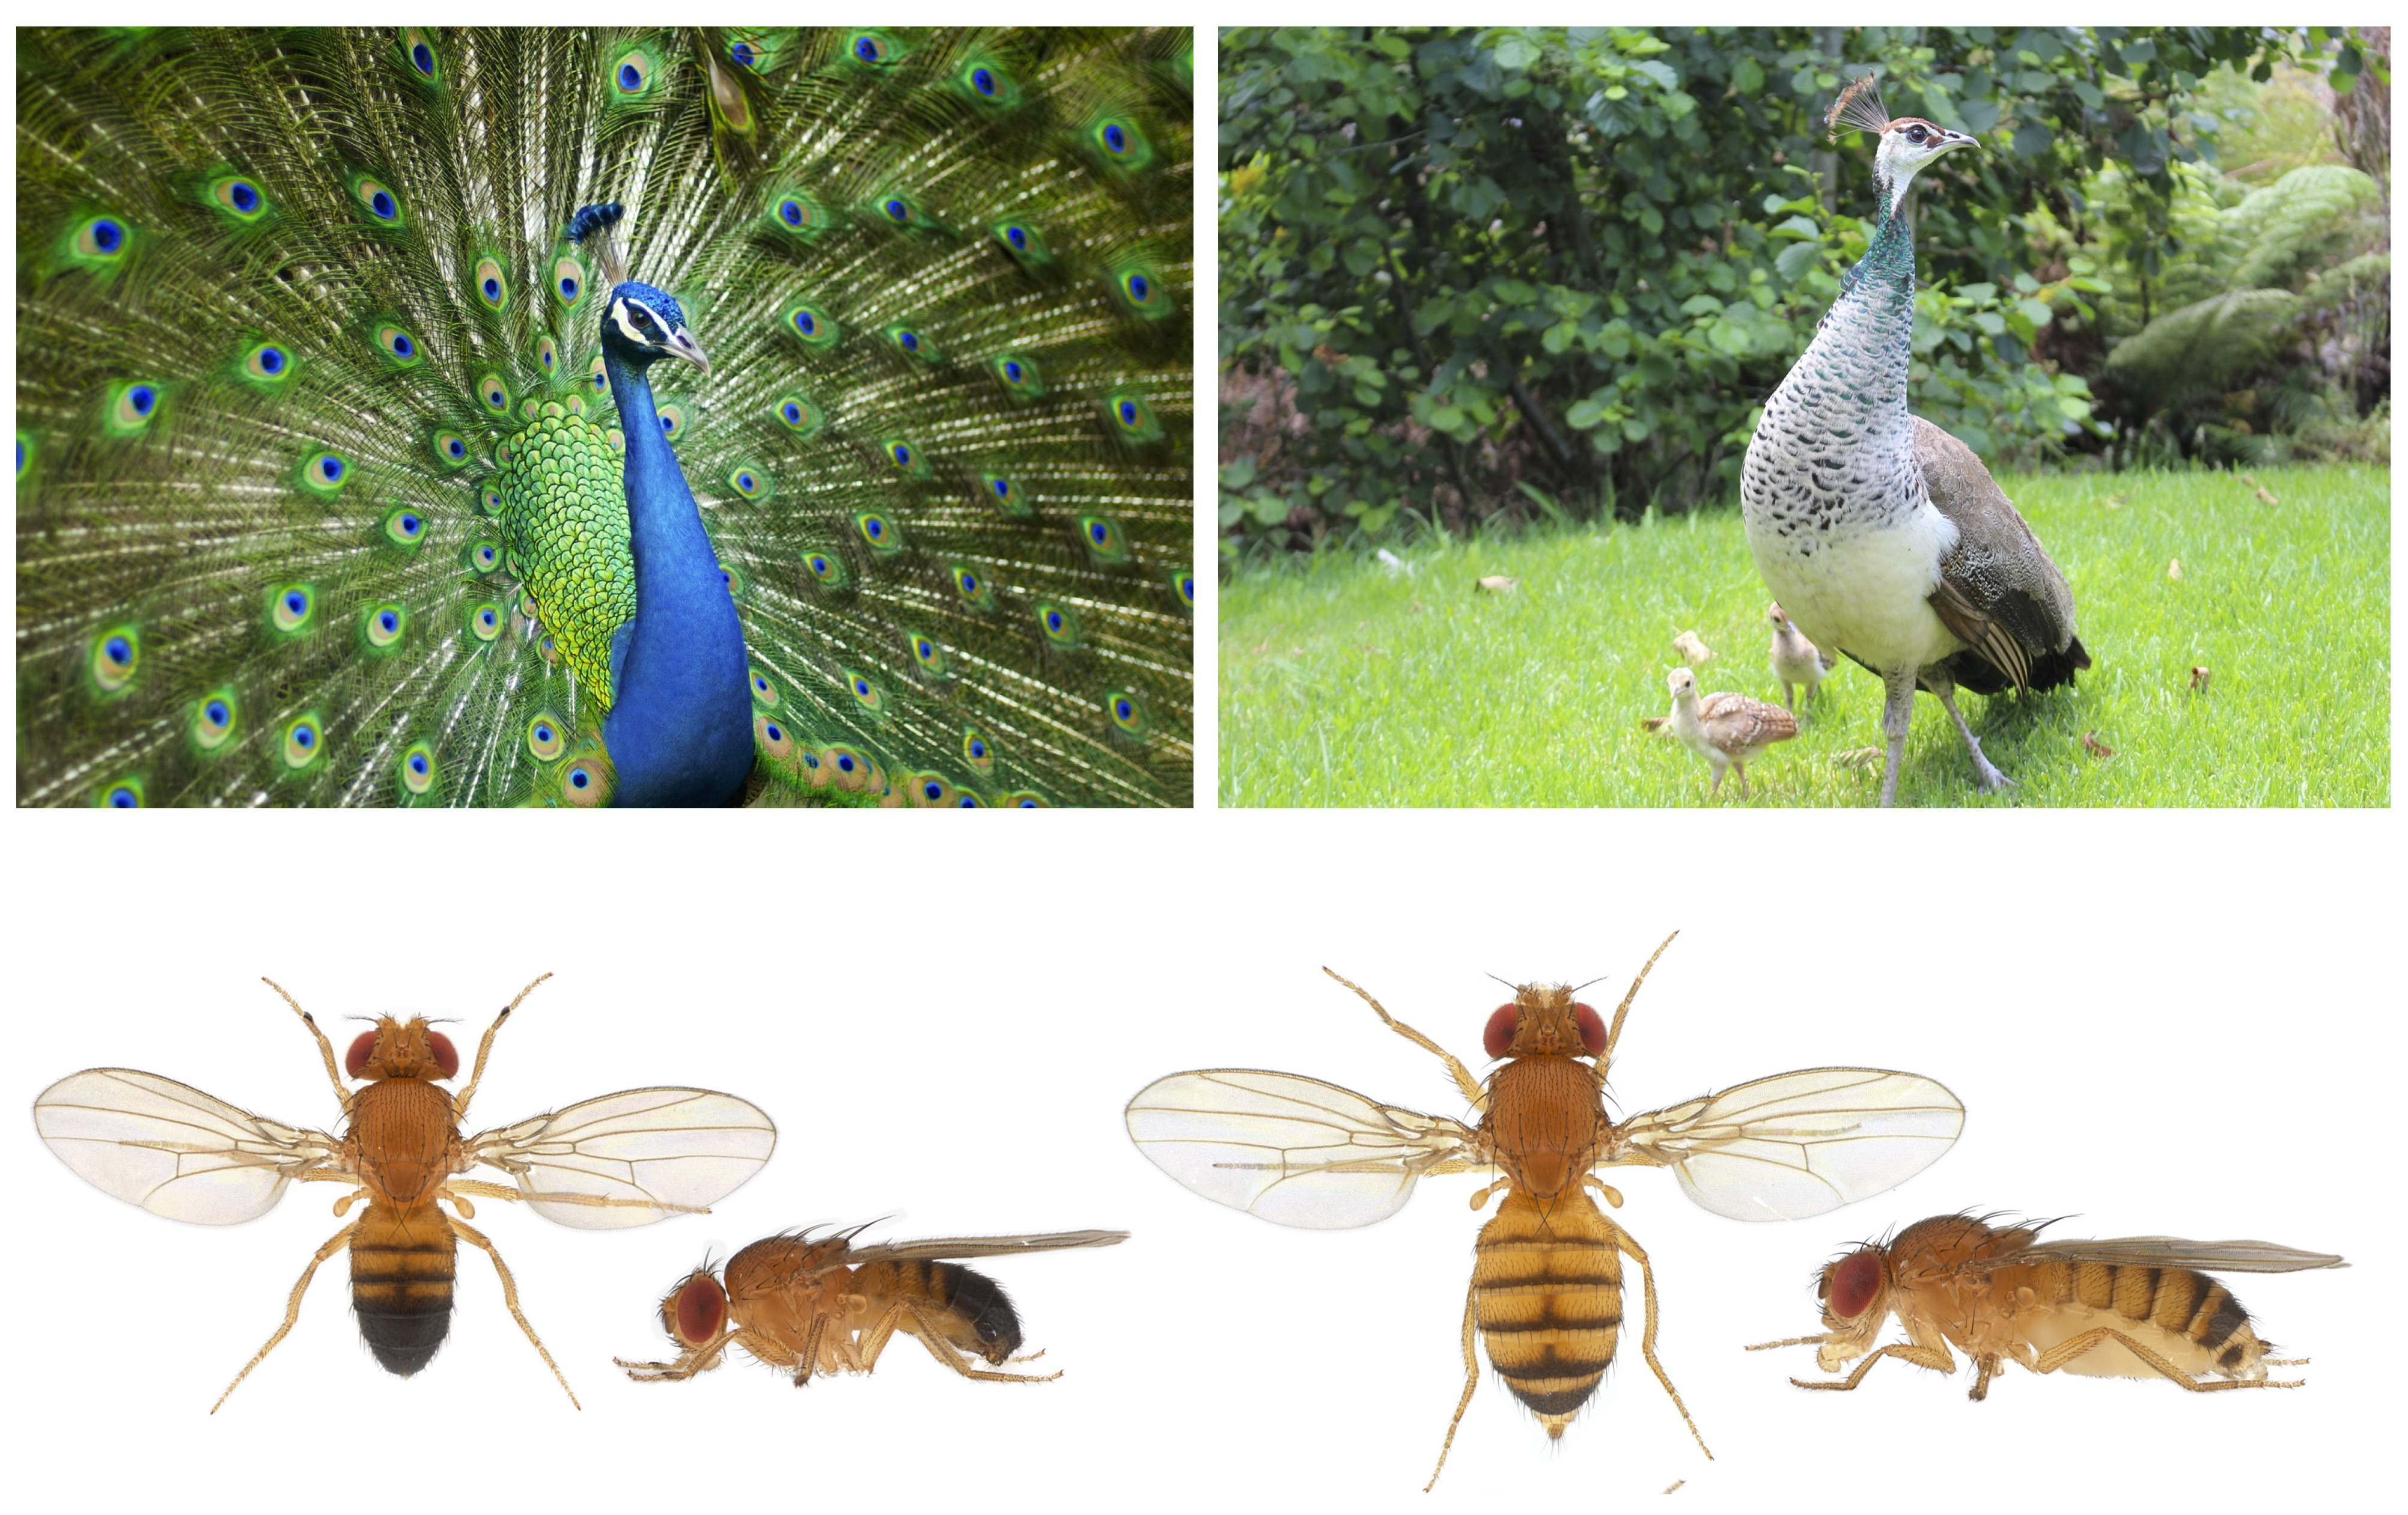 How do sexual selection and natural selection conflict